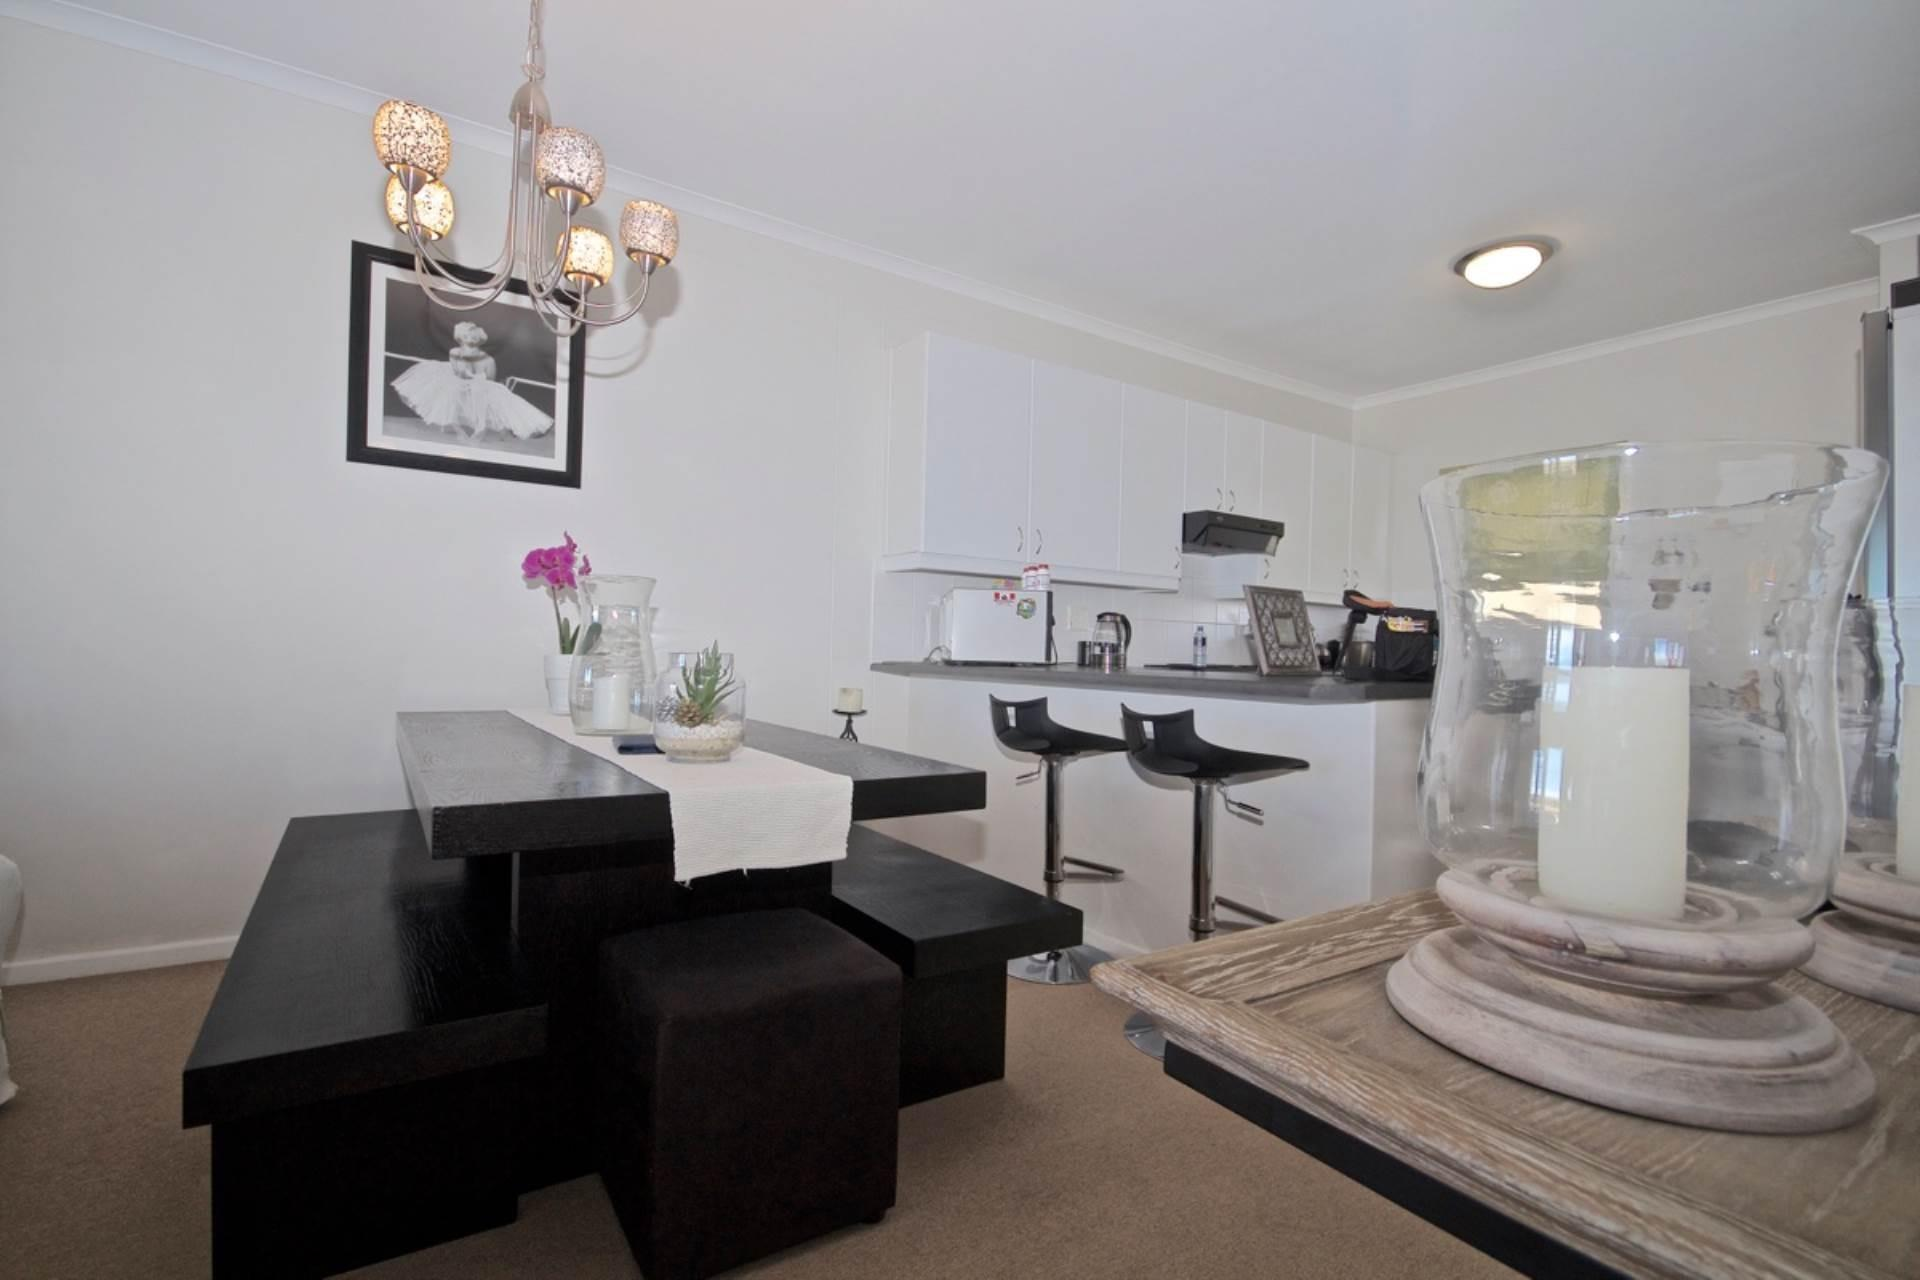 2 Bedroom Apartment / Flat For Sale in Royal Ascot